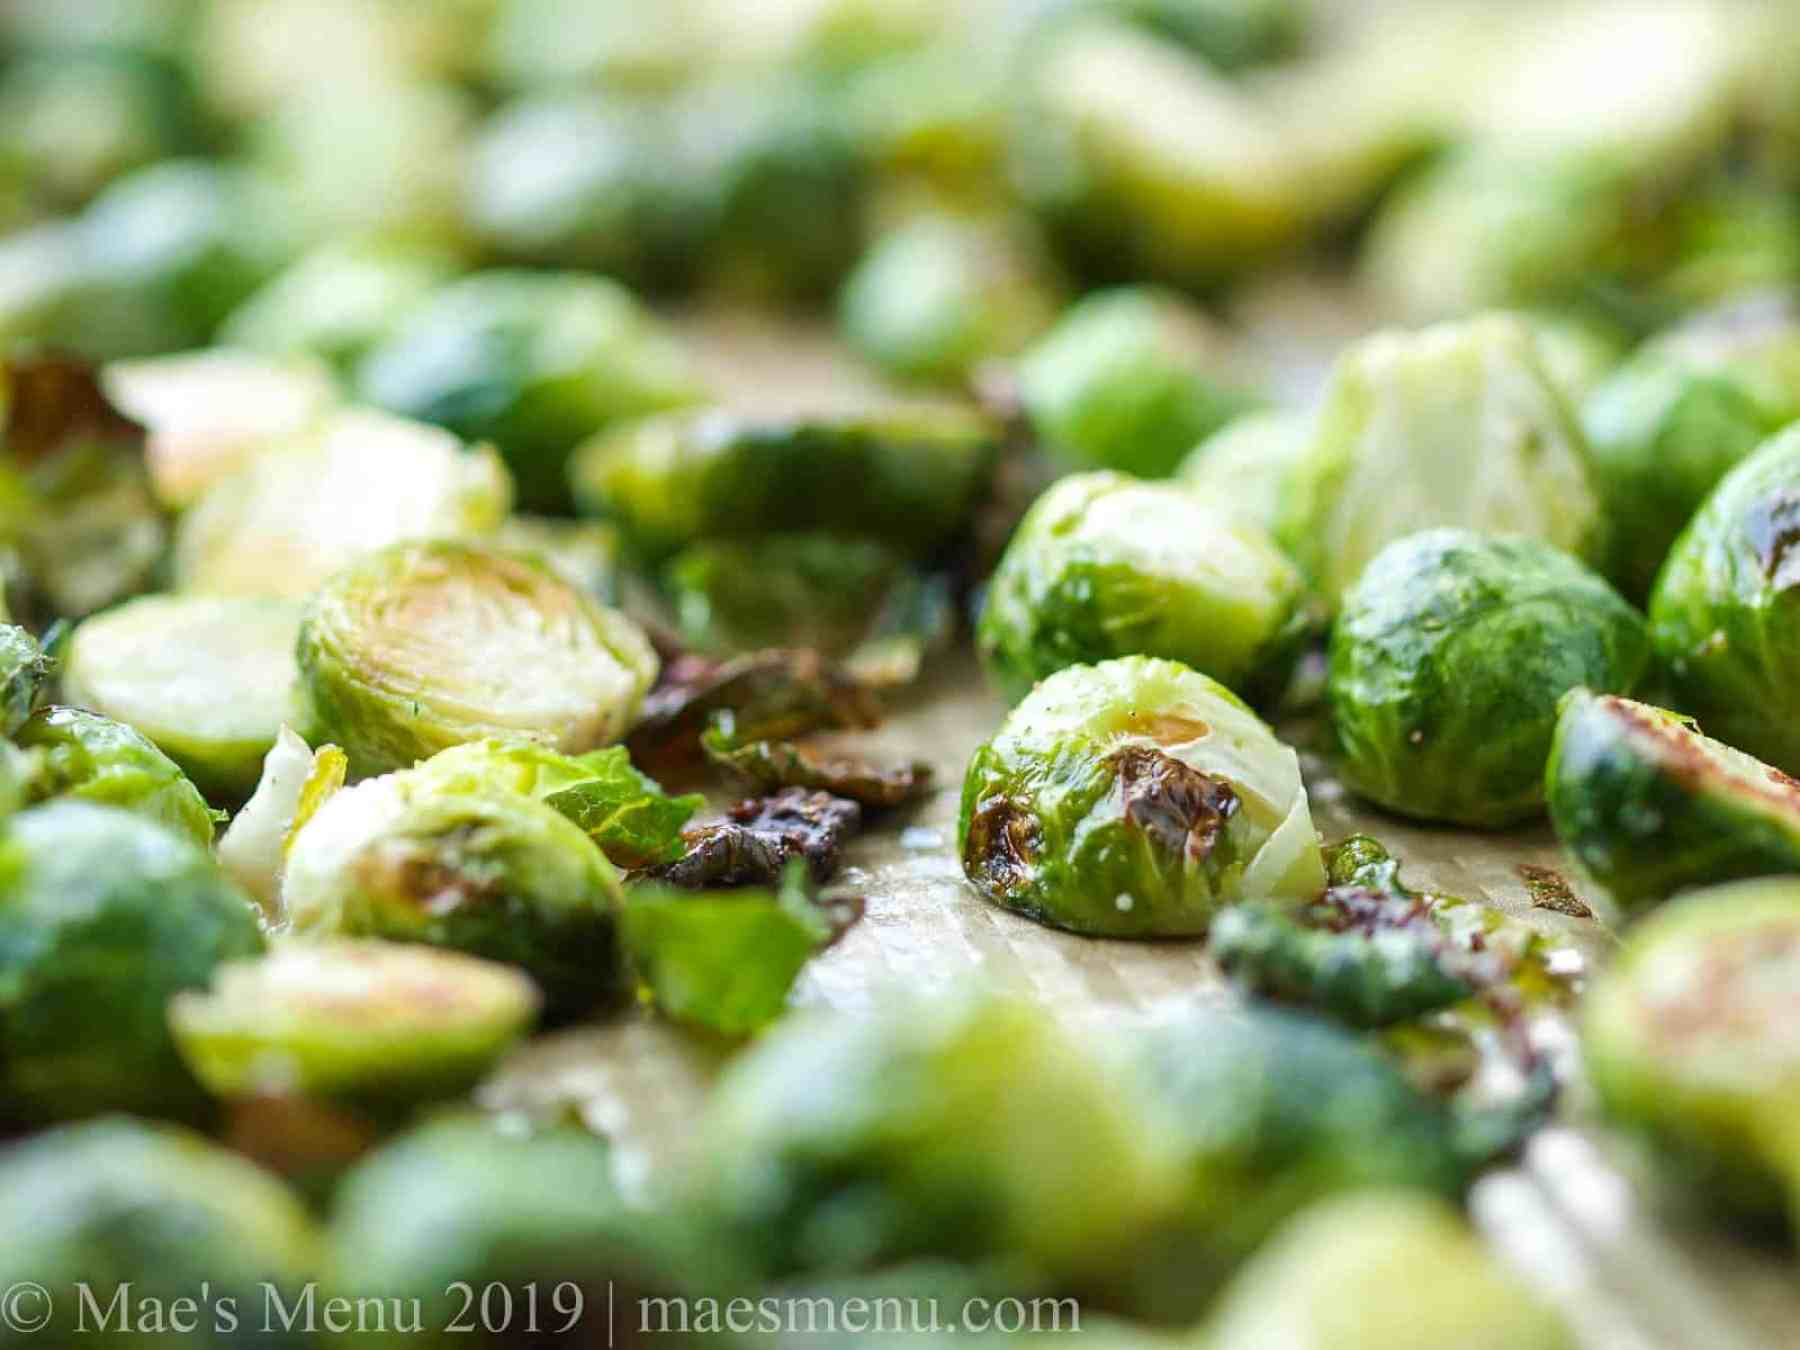 A large sheet pan of freshly roasted brussels sprouts.